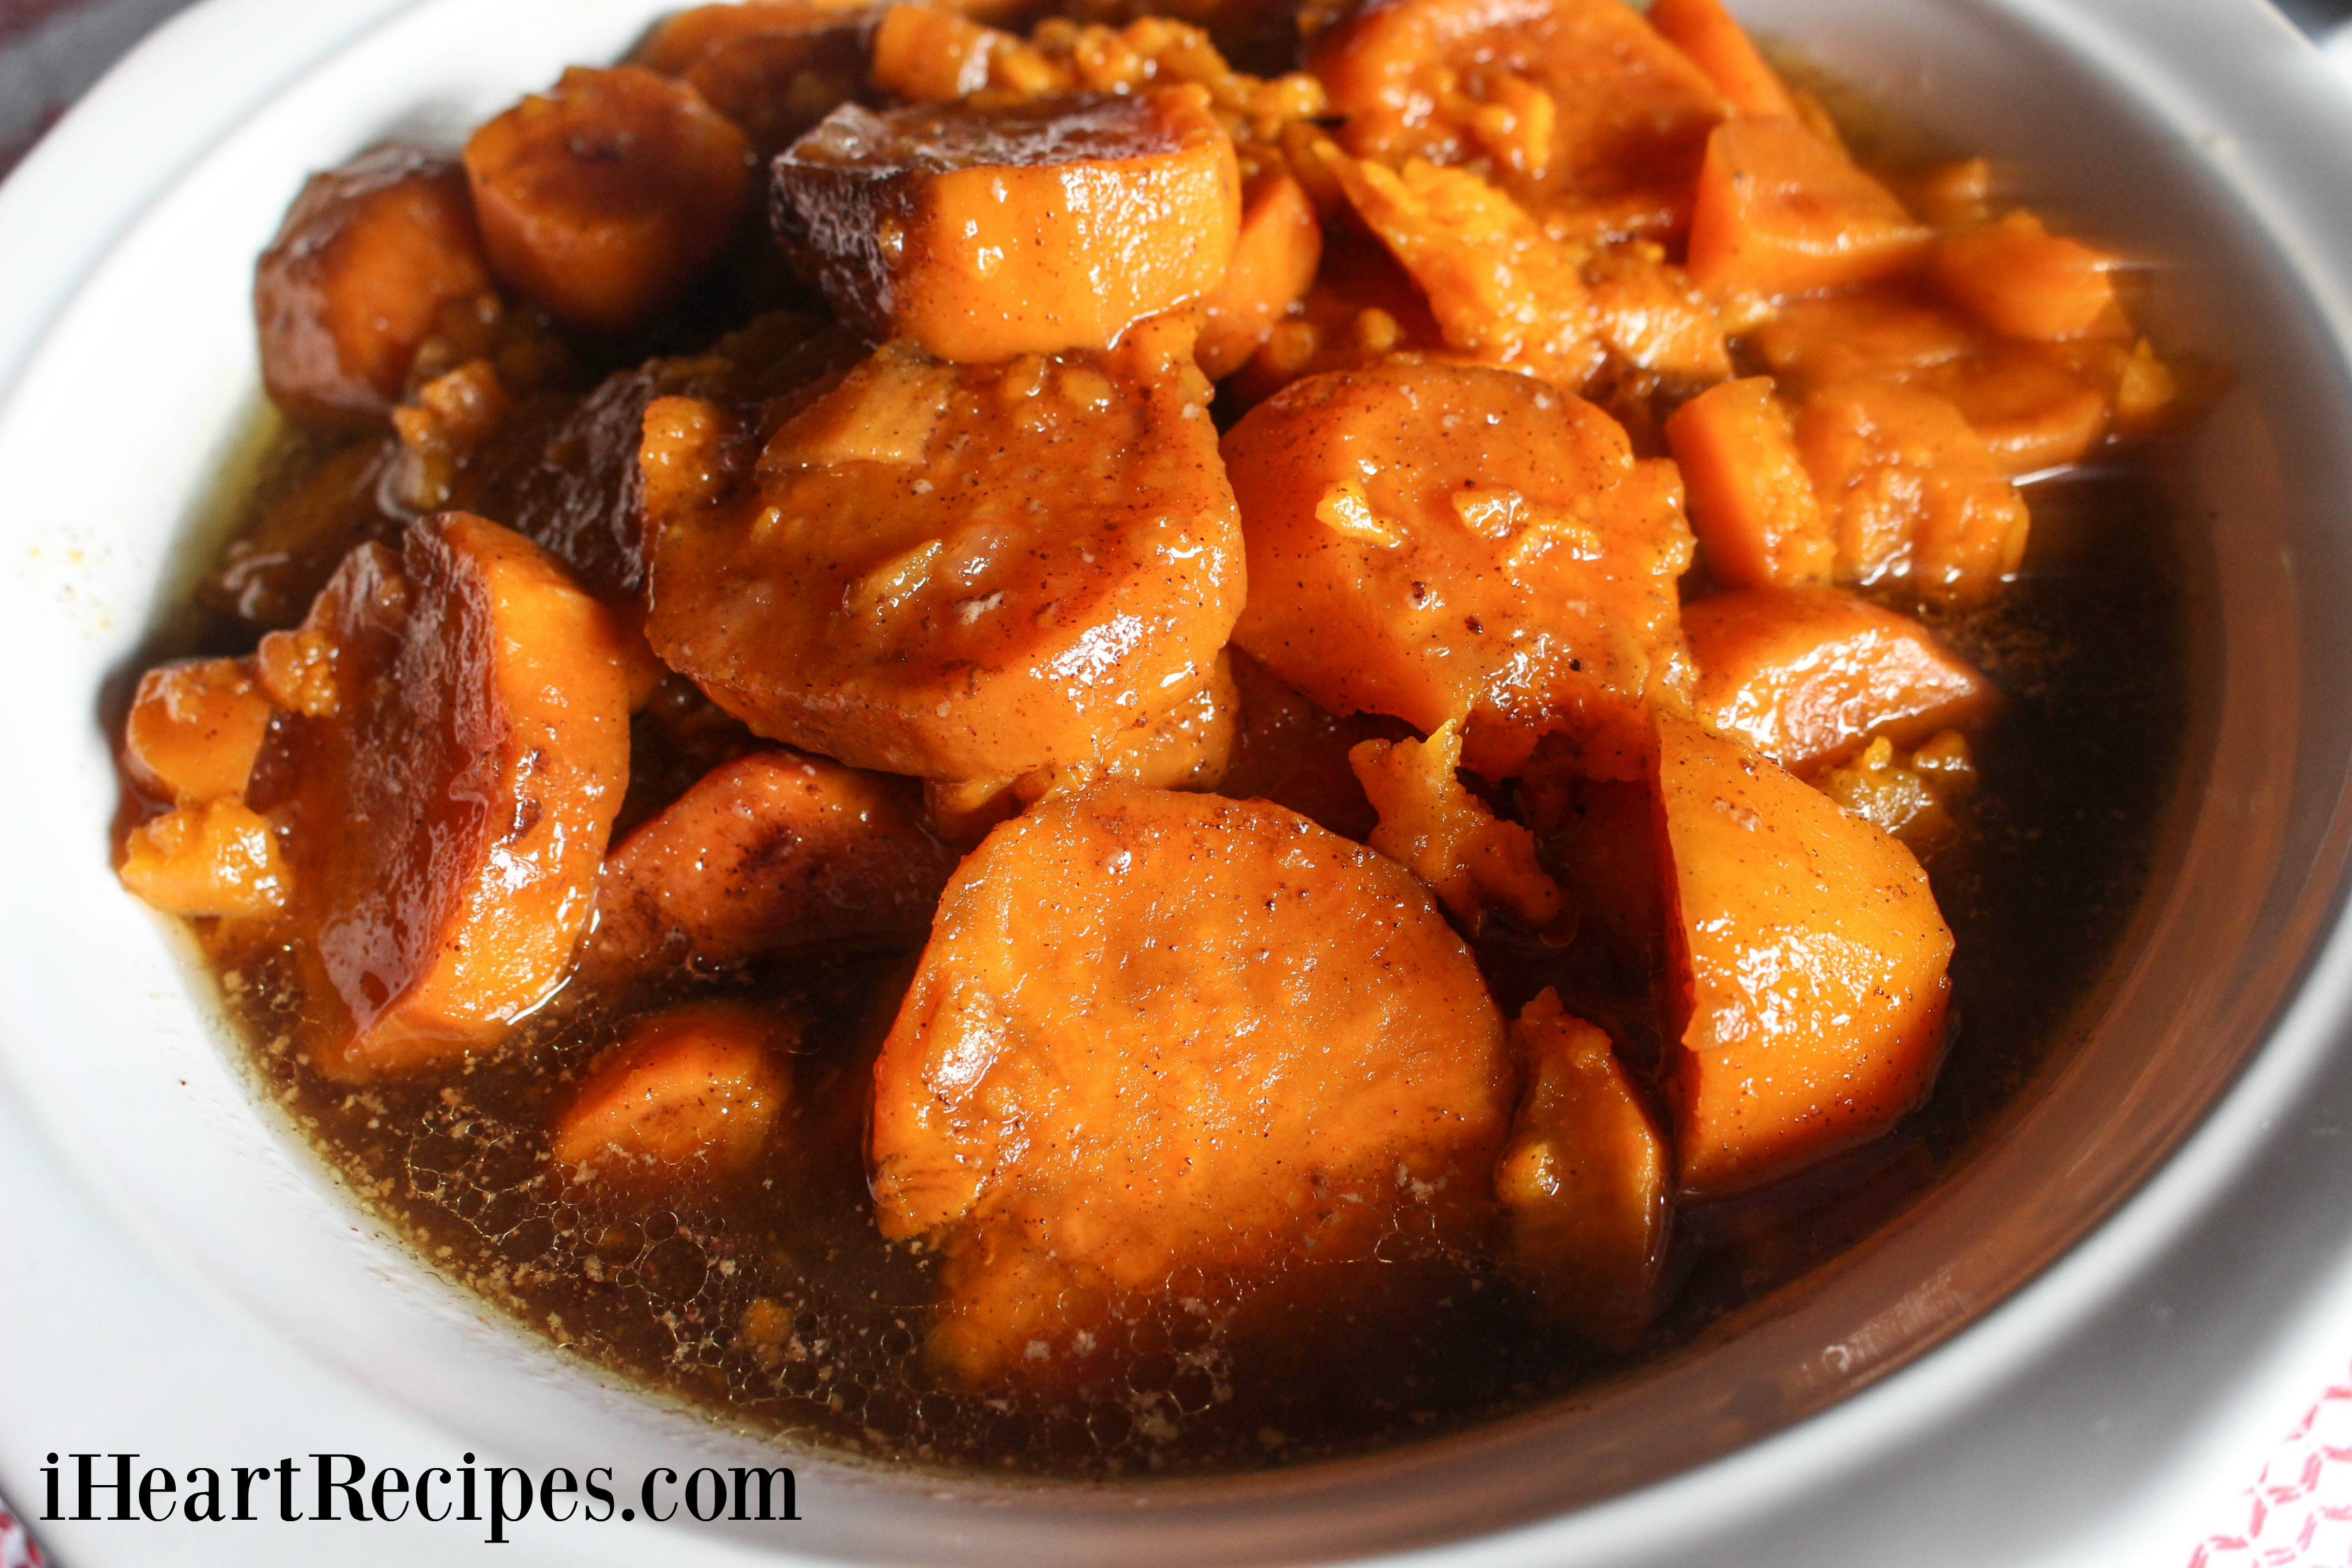 Bourbon candied yams are a delicious treat that everyone at the table will enjoy.